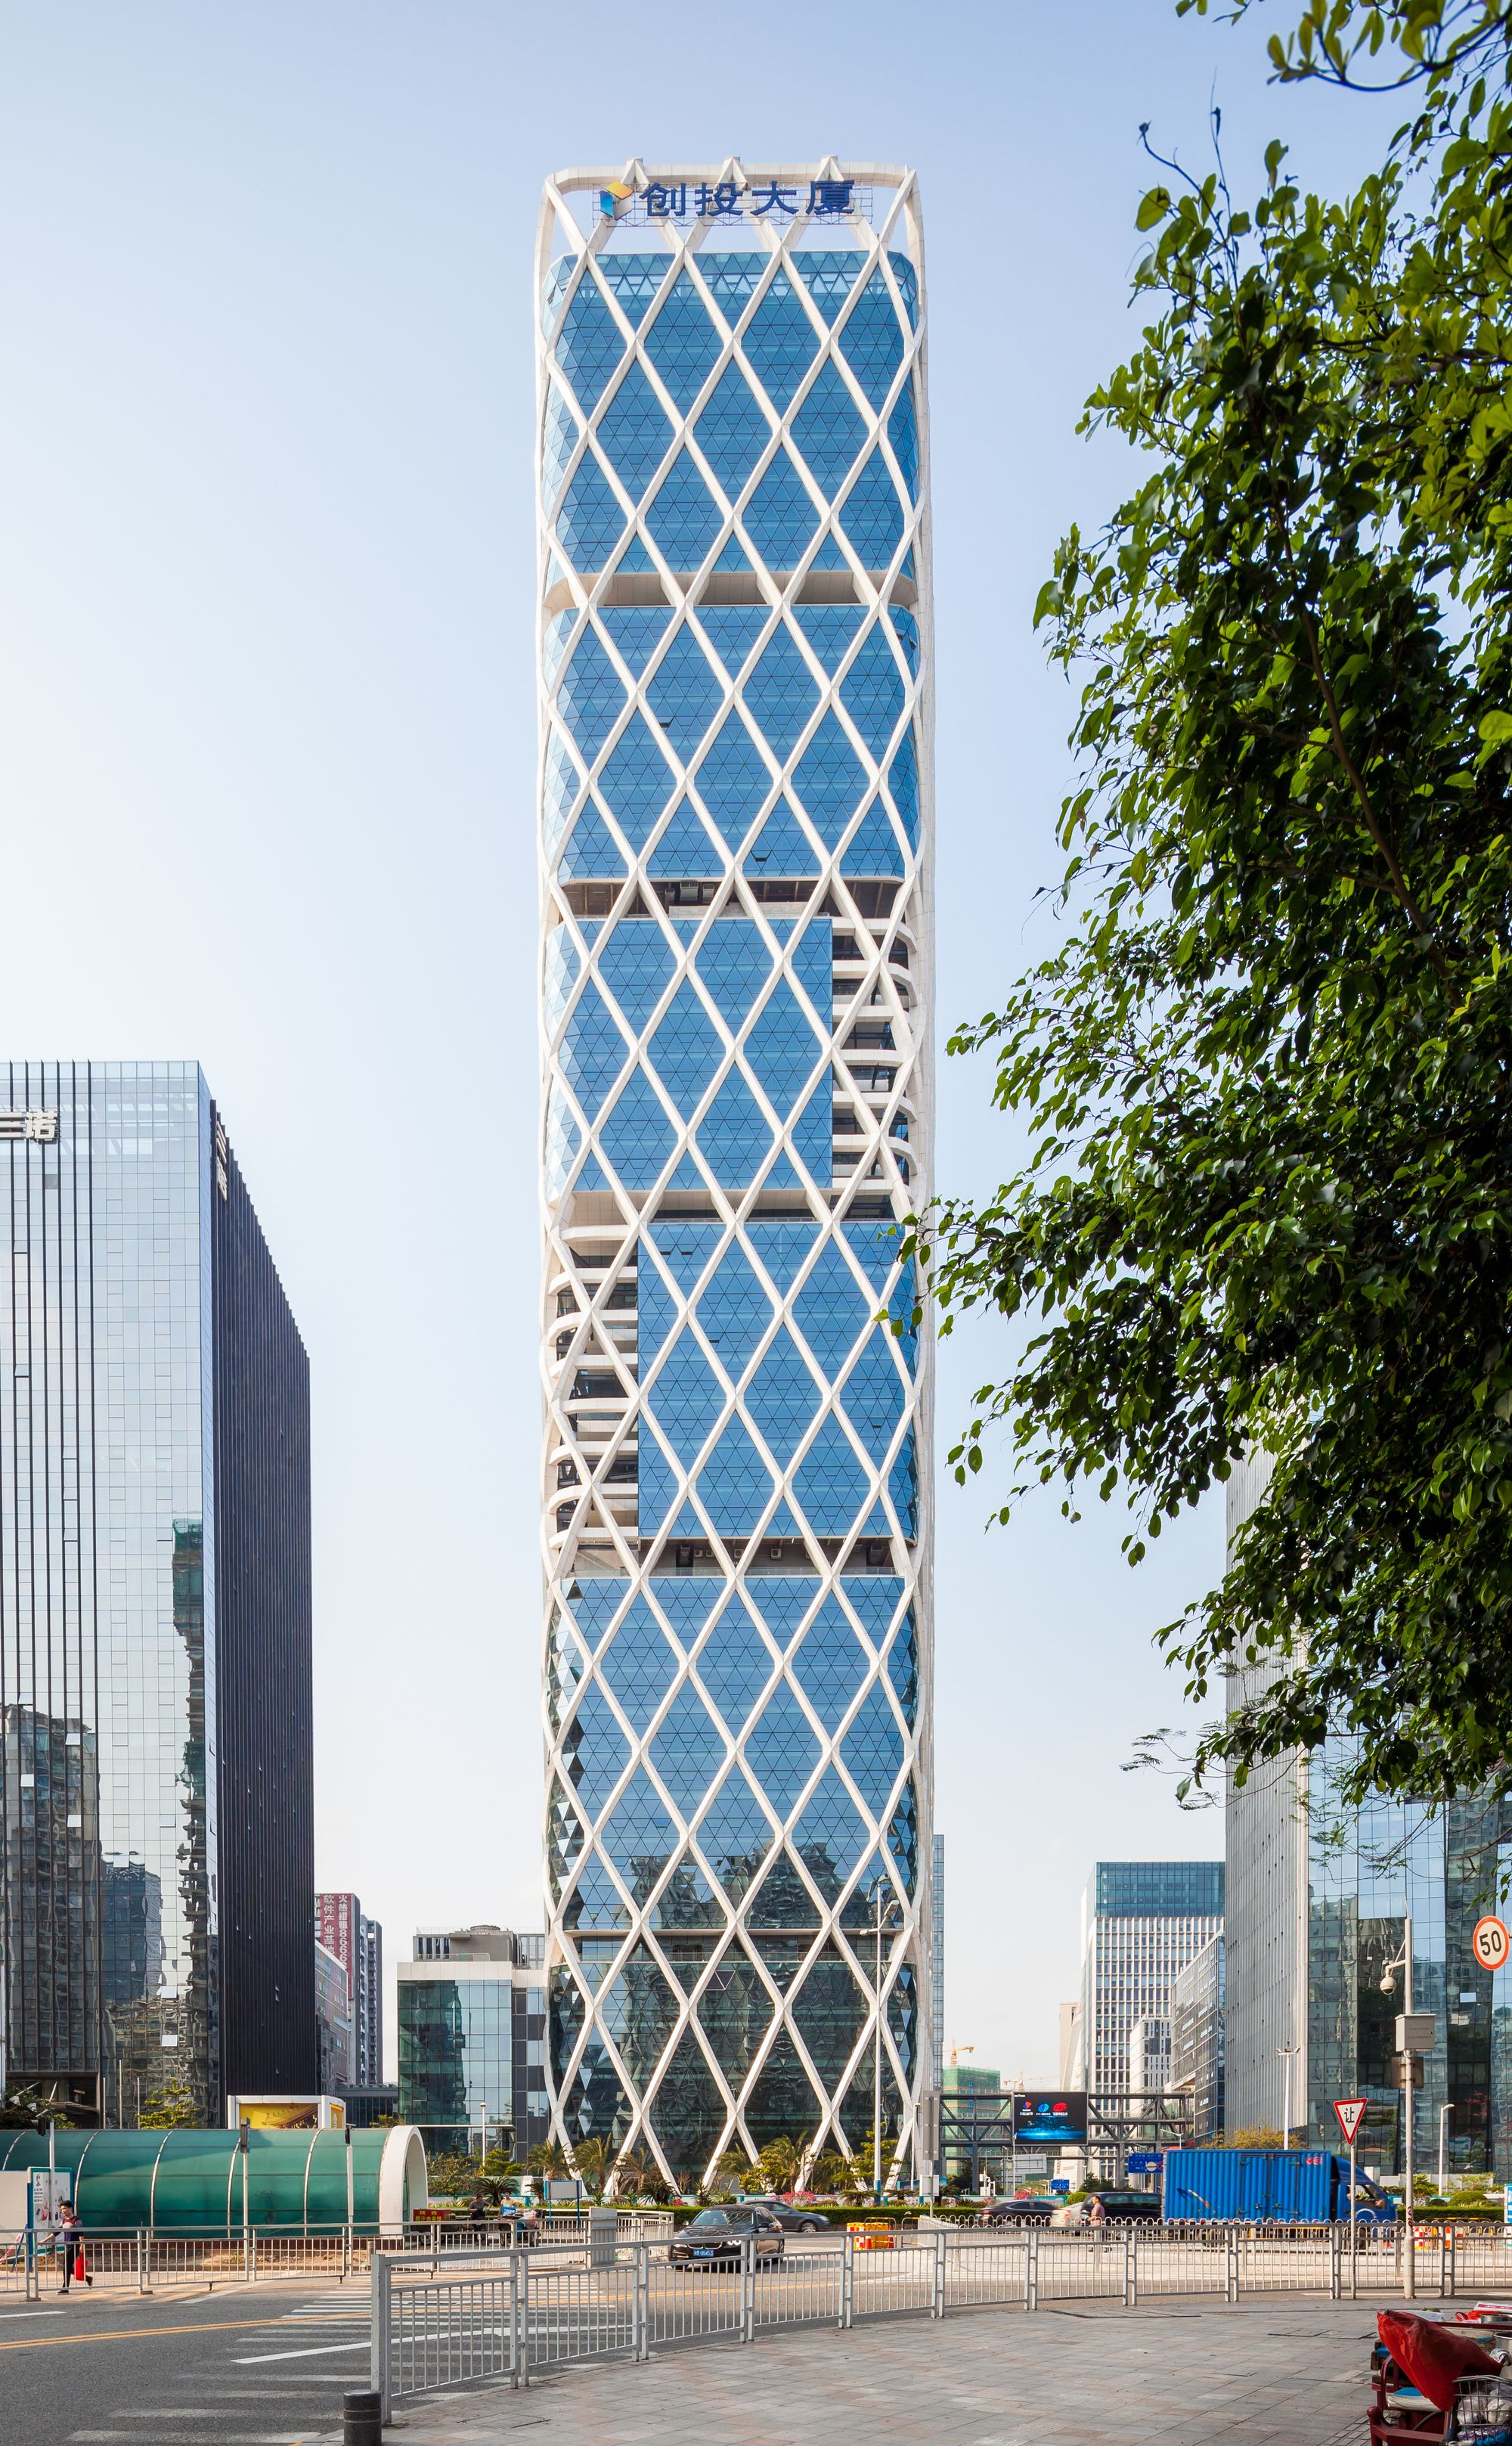 architectural engineering buildings. Shenzhen VC-PE Tower / Studio Georges Hung + Huazhu Architectural Engineering Buildings L